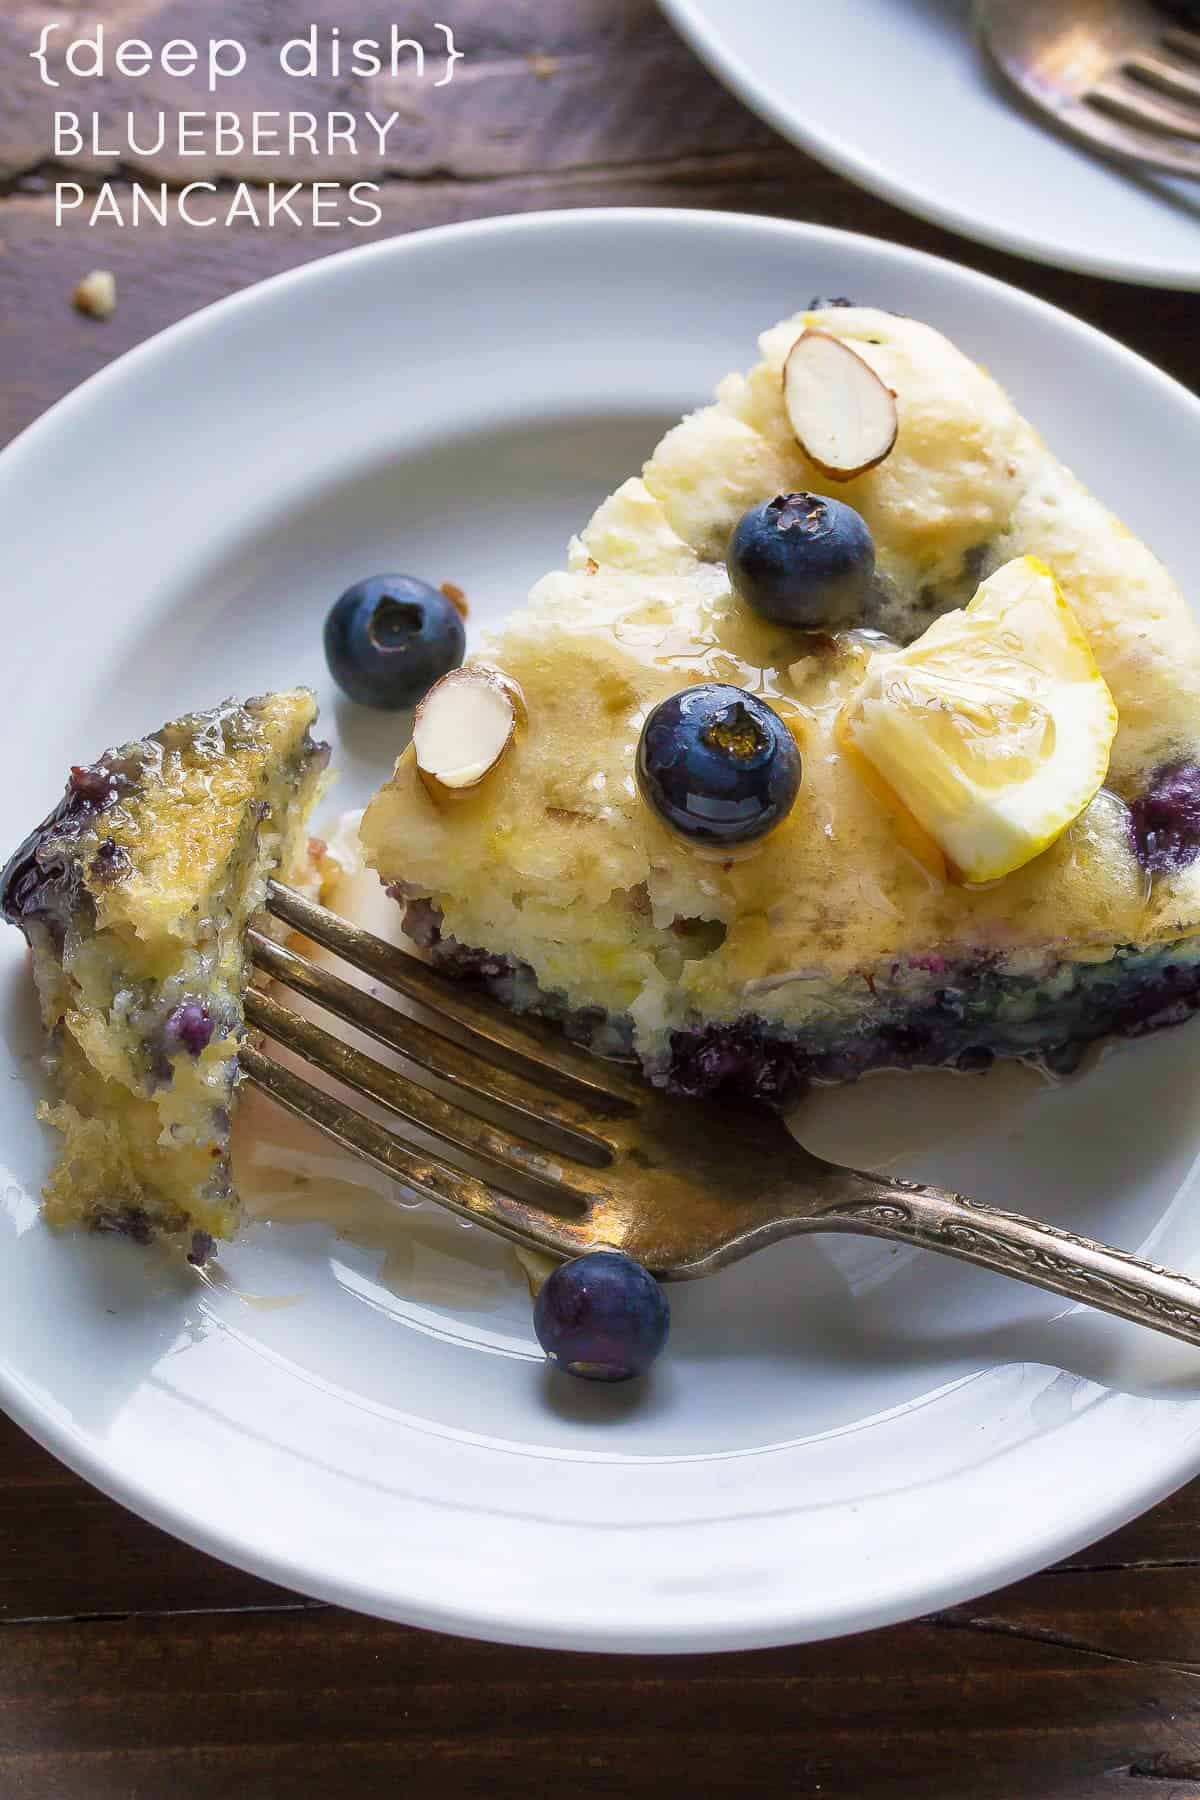 Deep Dish Blueberry-Almond Pancakes, an easy hands off healthy breakfast or brunch recipe! With blueberries, almonds and lemon zest.